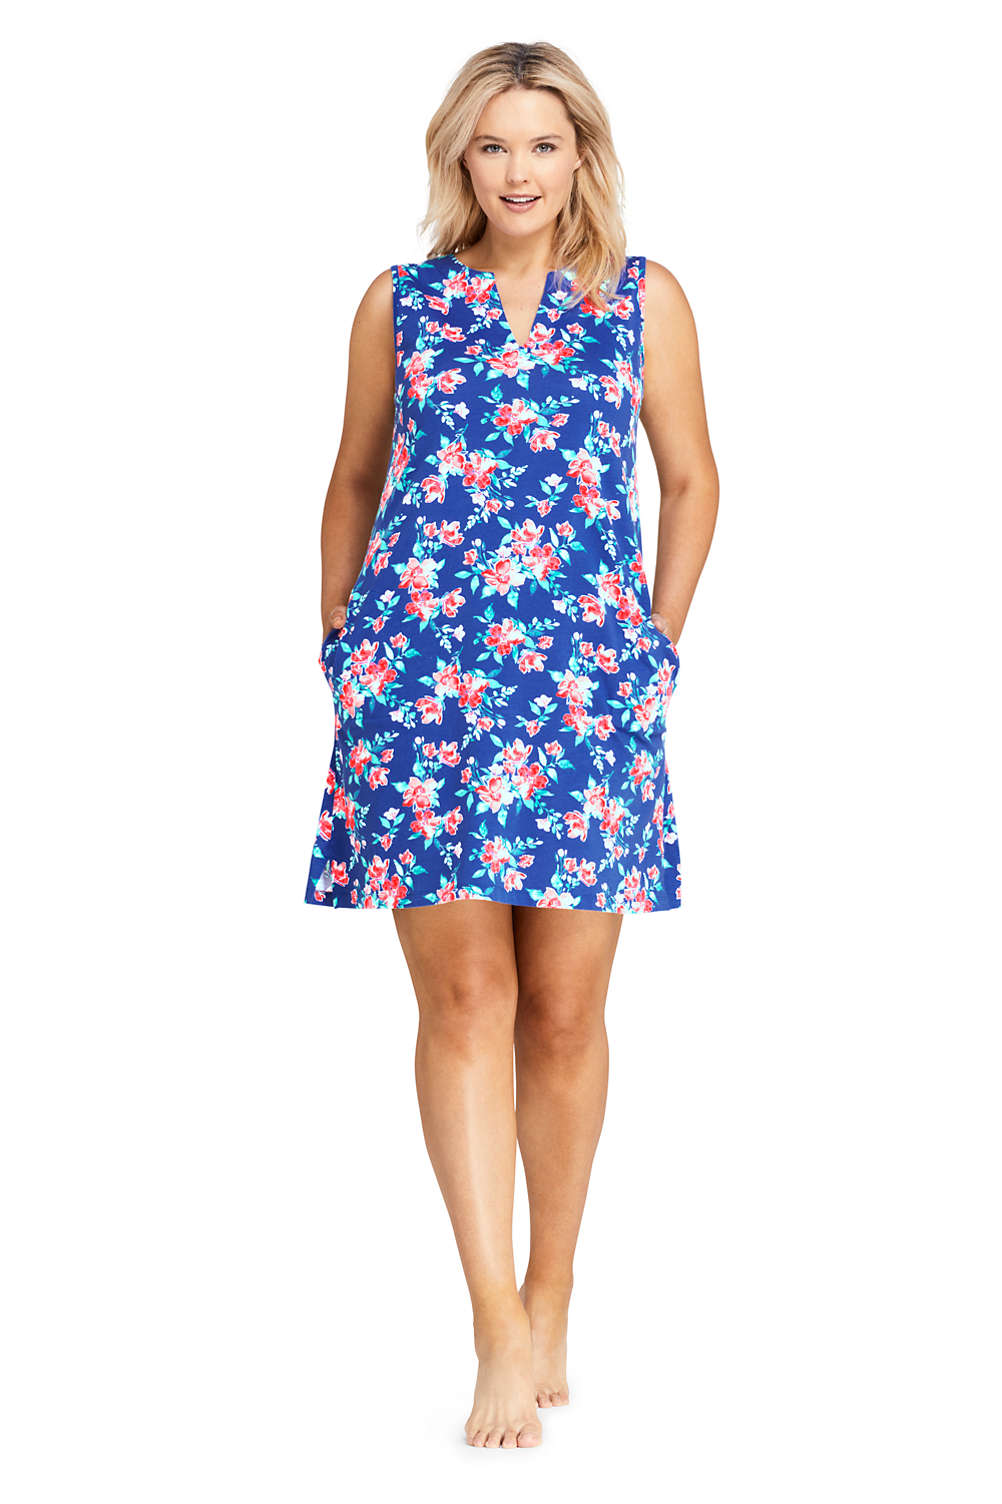 c65ebd5dc0660 Women s Plus Size Cotton Jersey Sleeveless Tunic Dress Swim Cover-up Print  from Lands  End